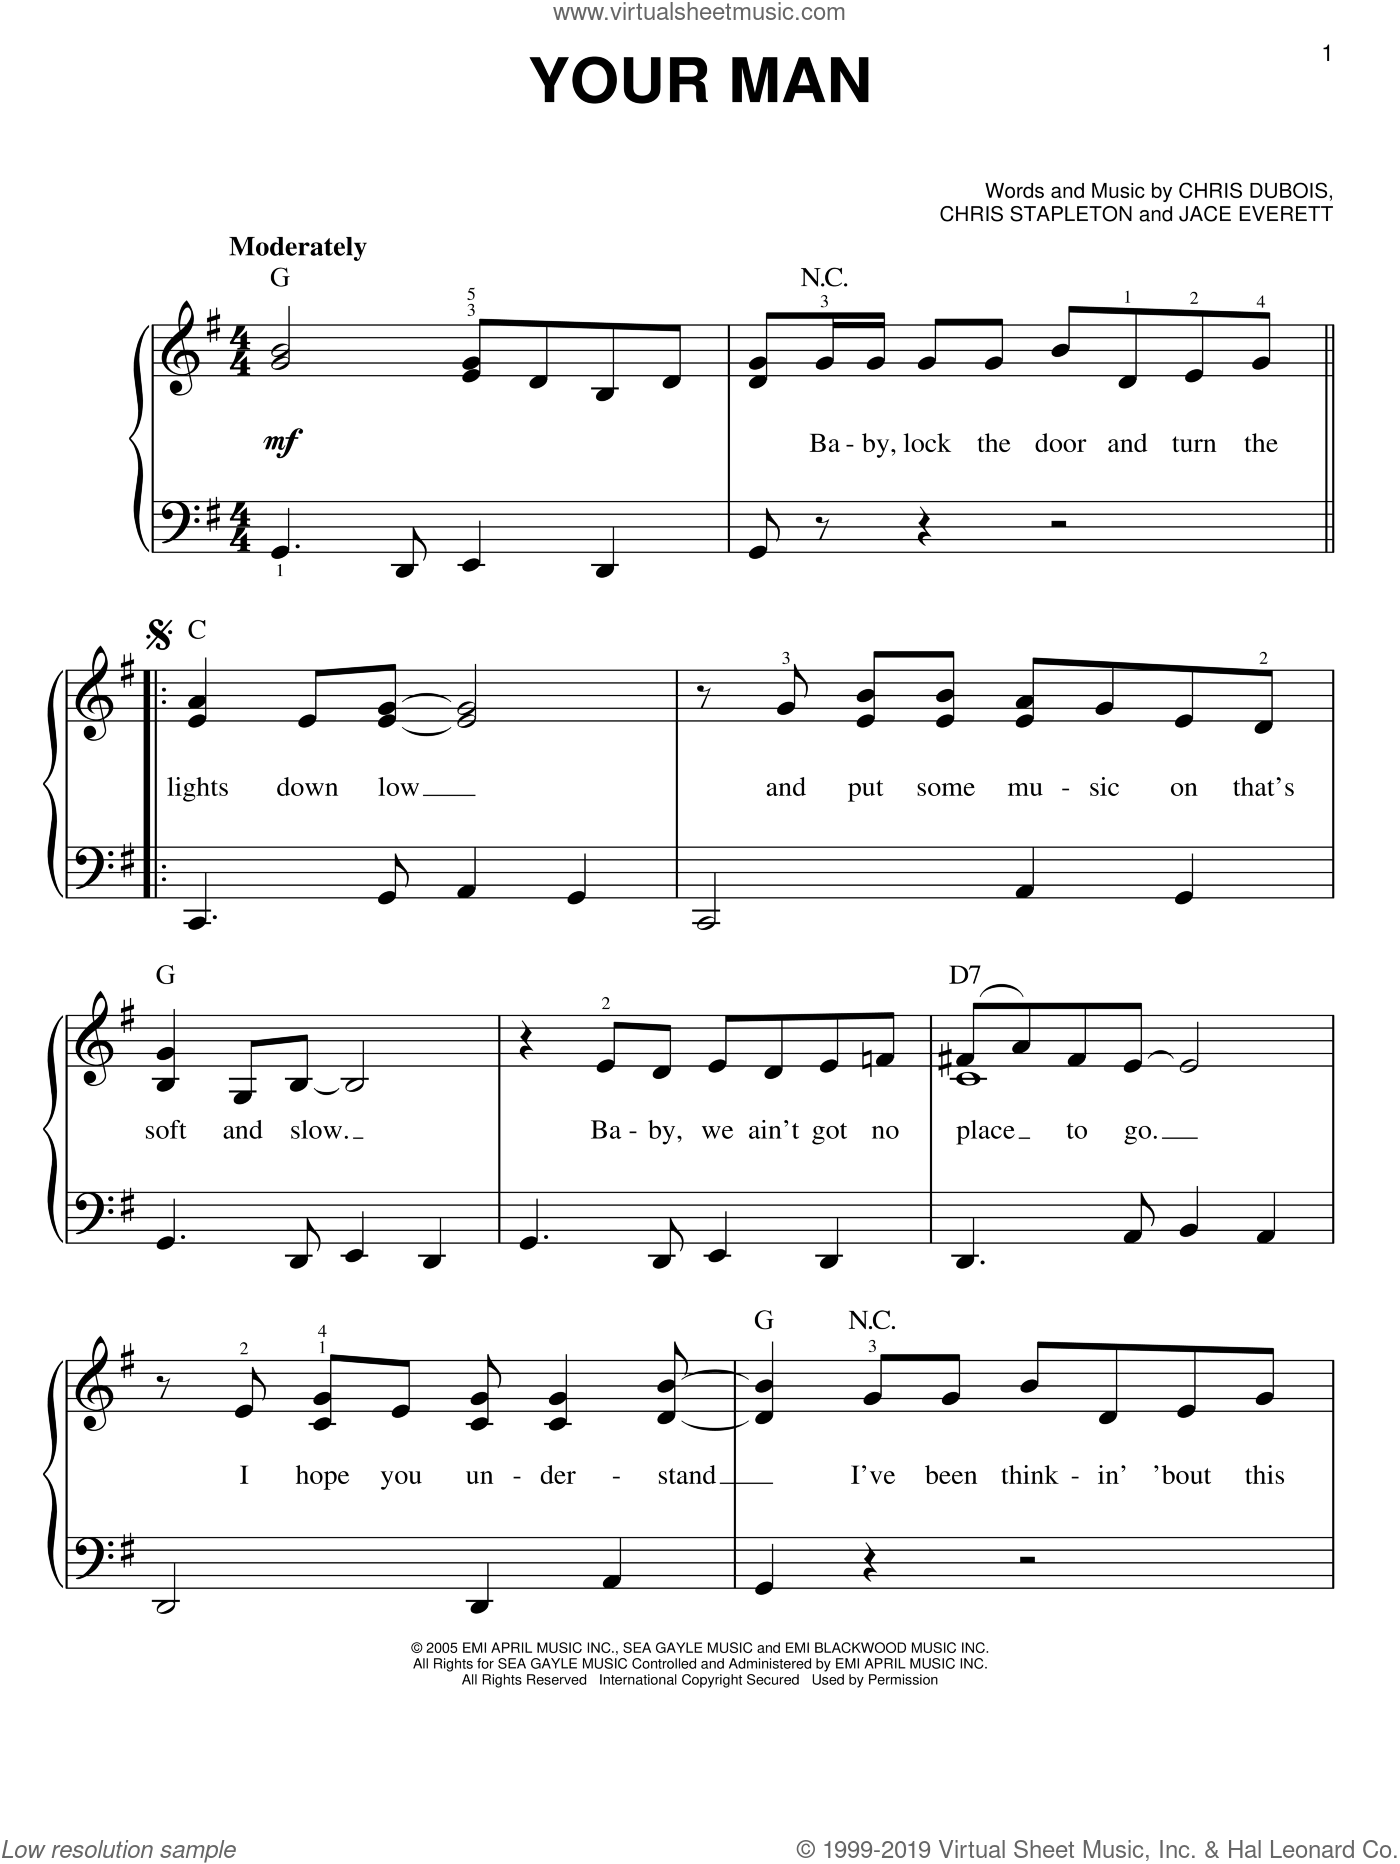 Your Man sheet music for piano solo by Jace Everett, Josh Turner, Chris DuBois and Chris Stapleton. Score Image Preview.